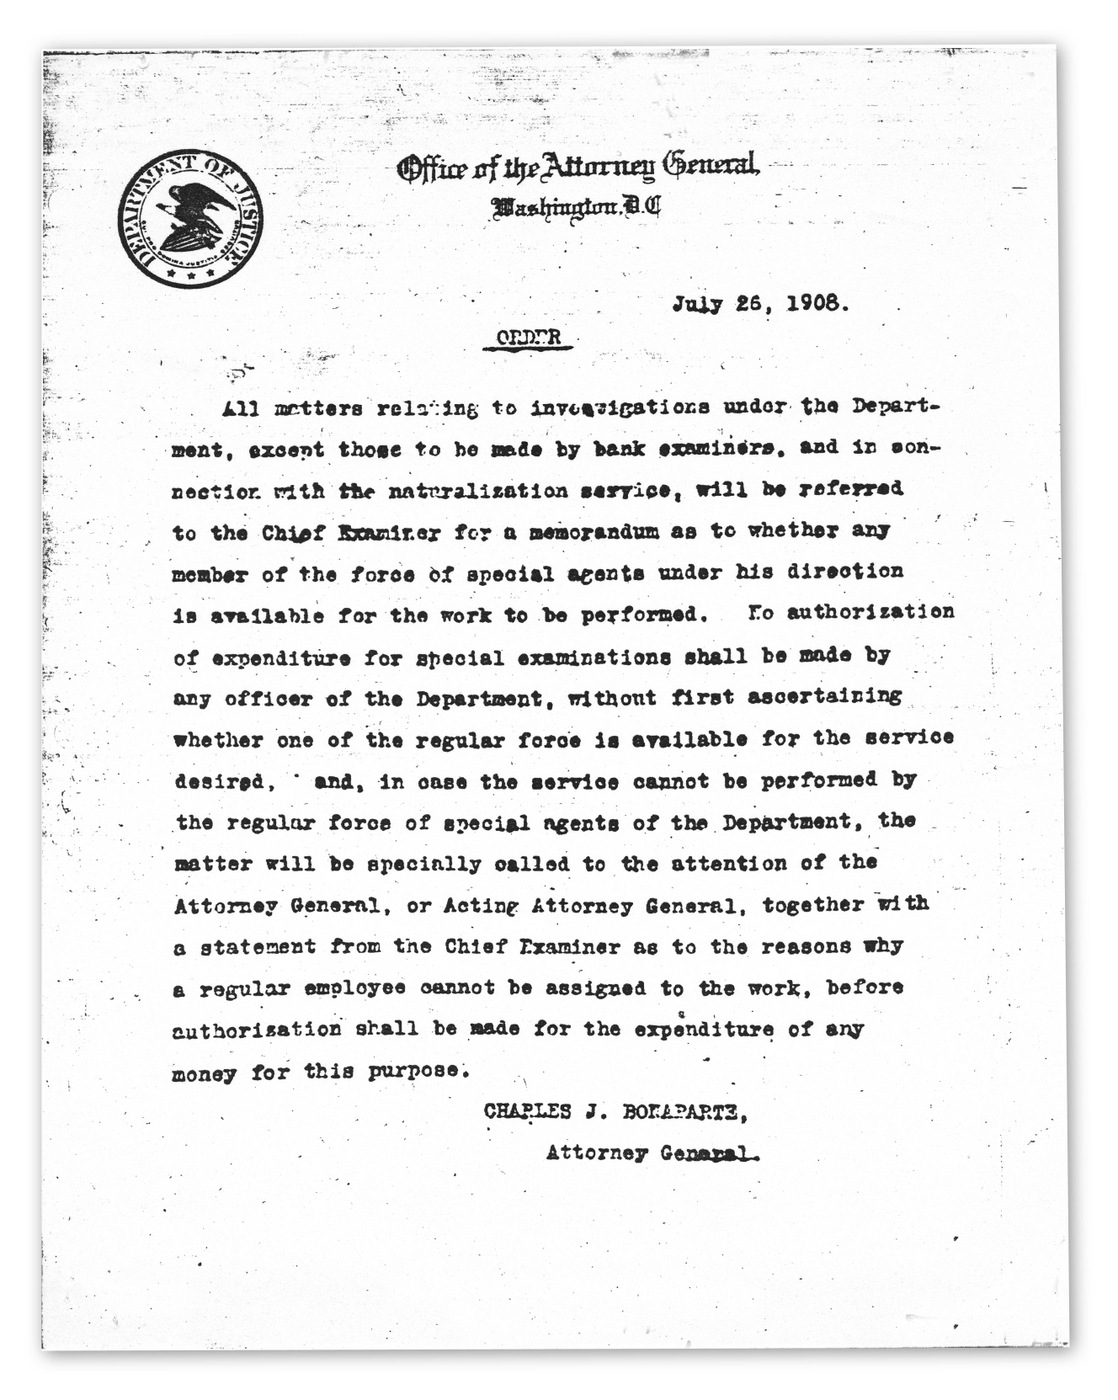 Founding order of the FBI creating a force of special agents dated July 26, 1908 and signed by Attorney General Charles J. Bonaparte.